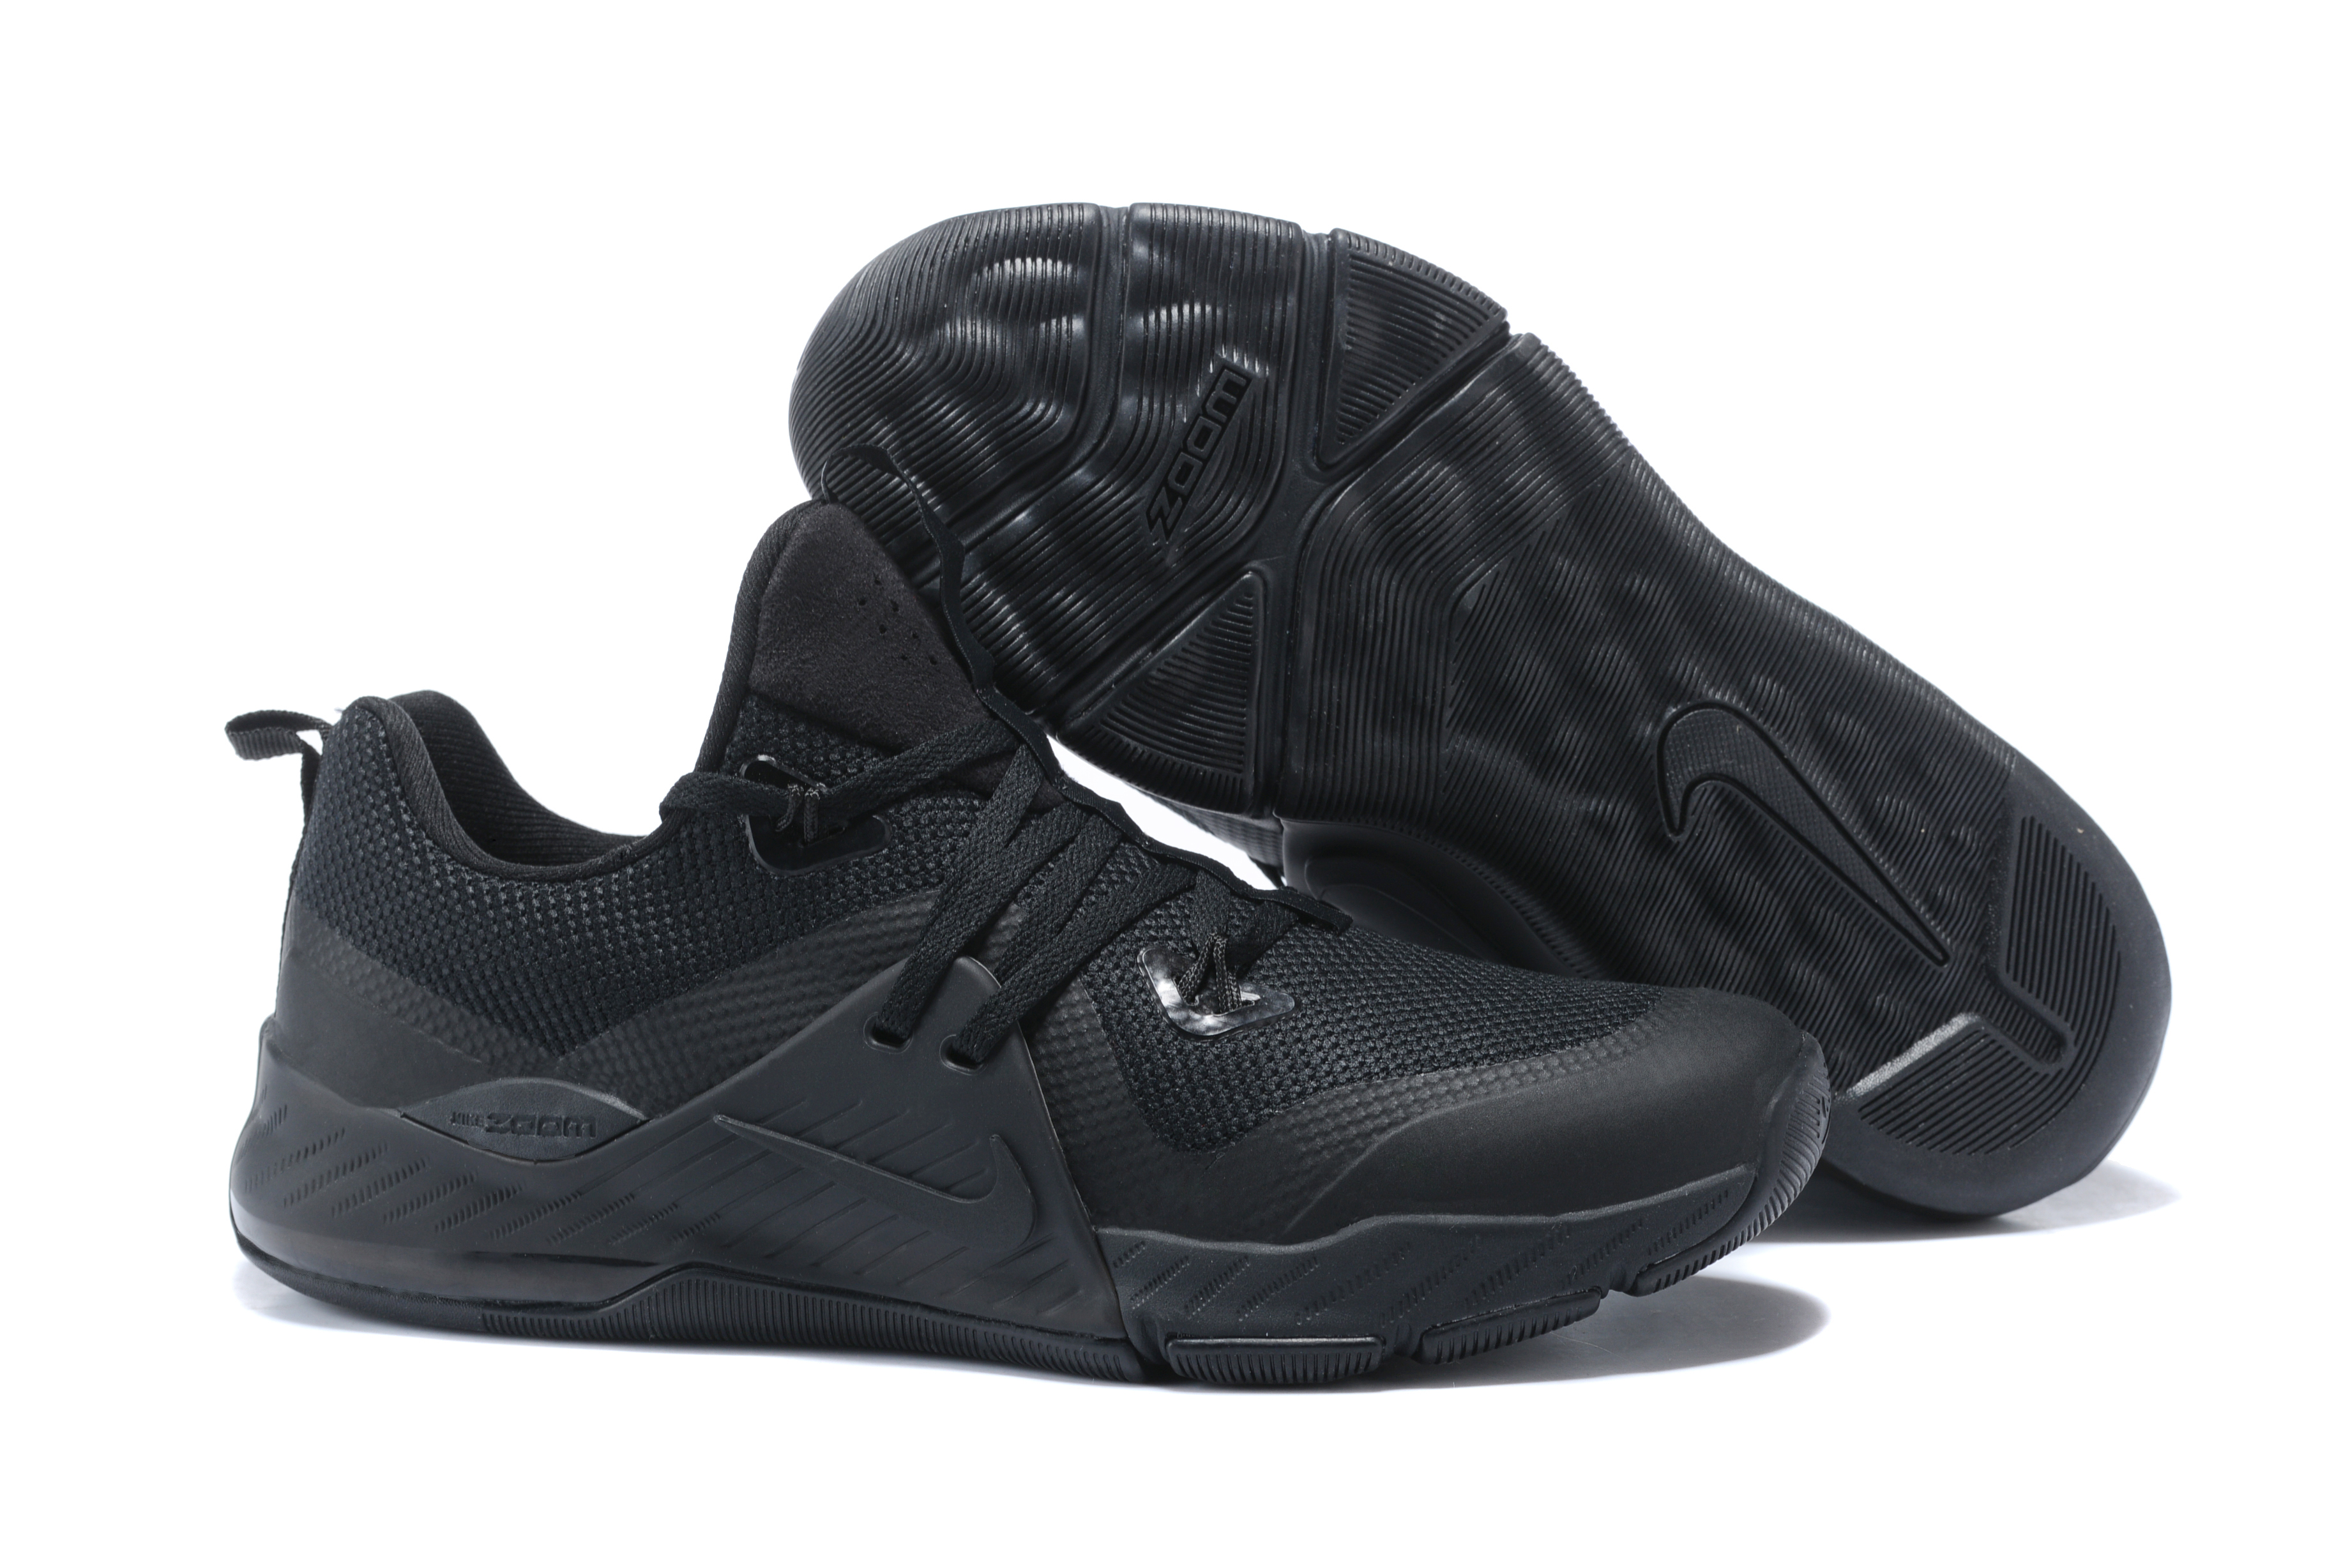 Nike Zoom II All Black Basketball Shoes